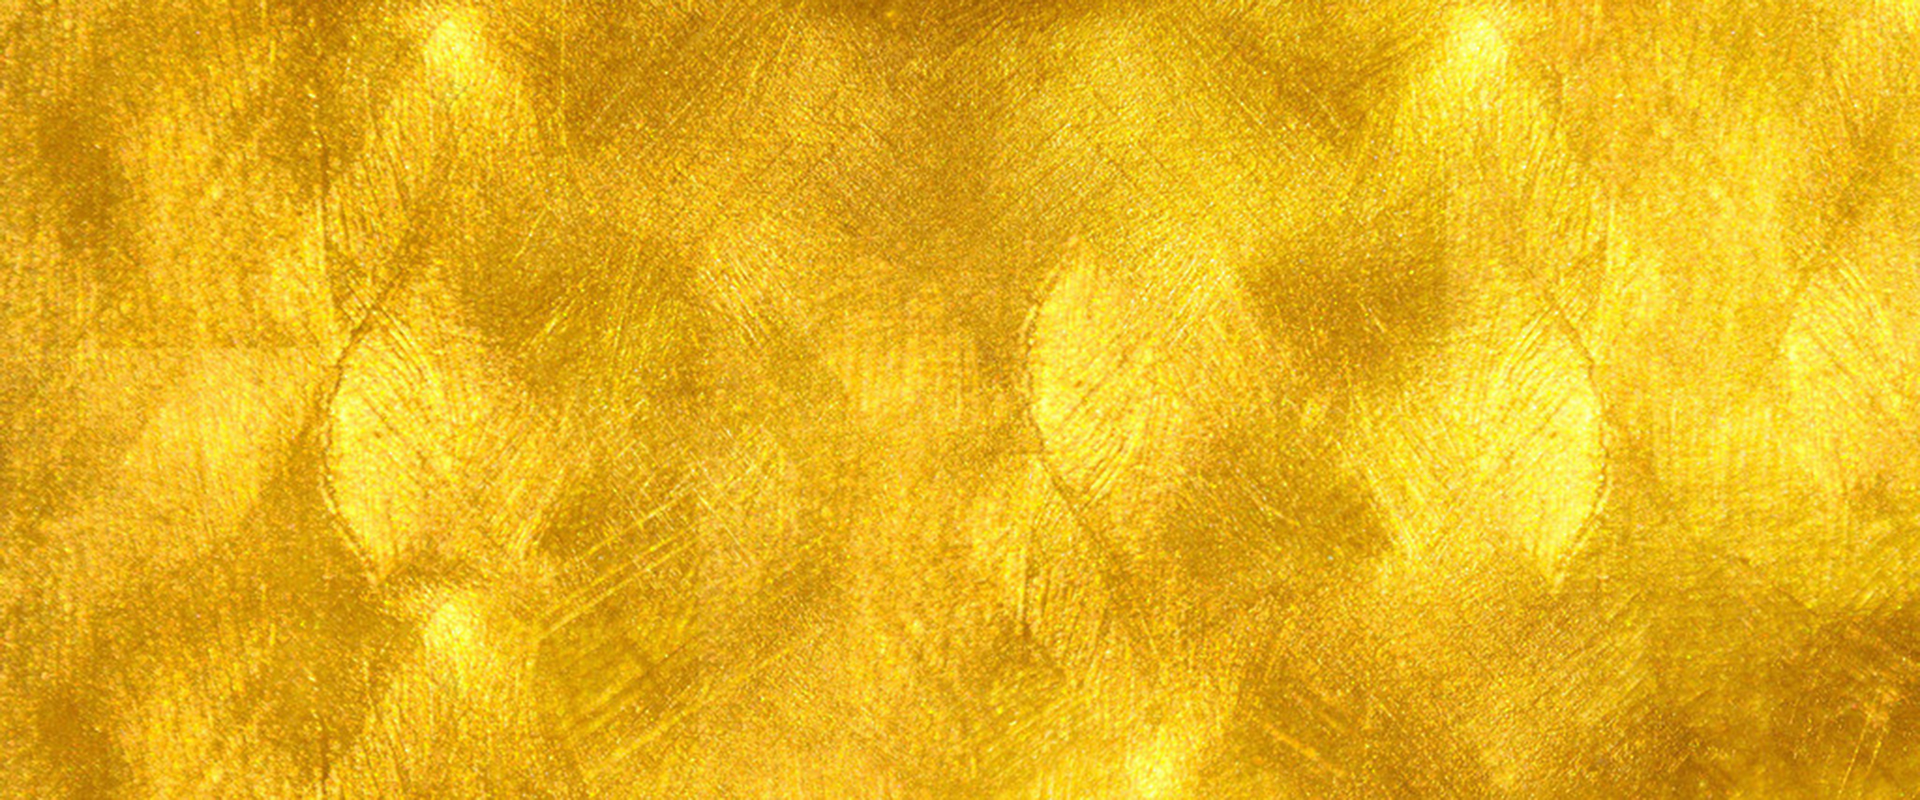 decorative metal texture background  golden  metal